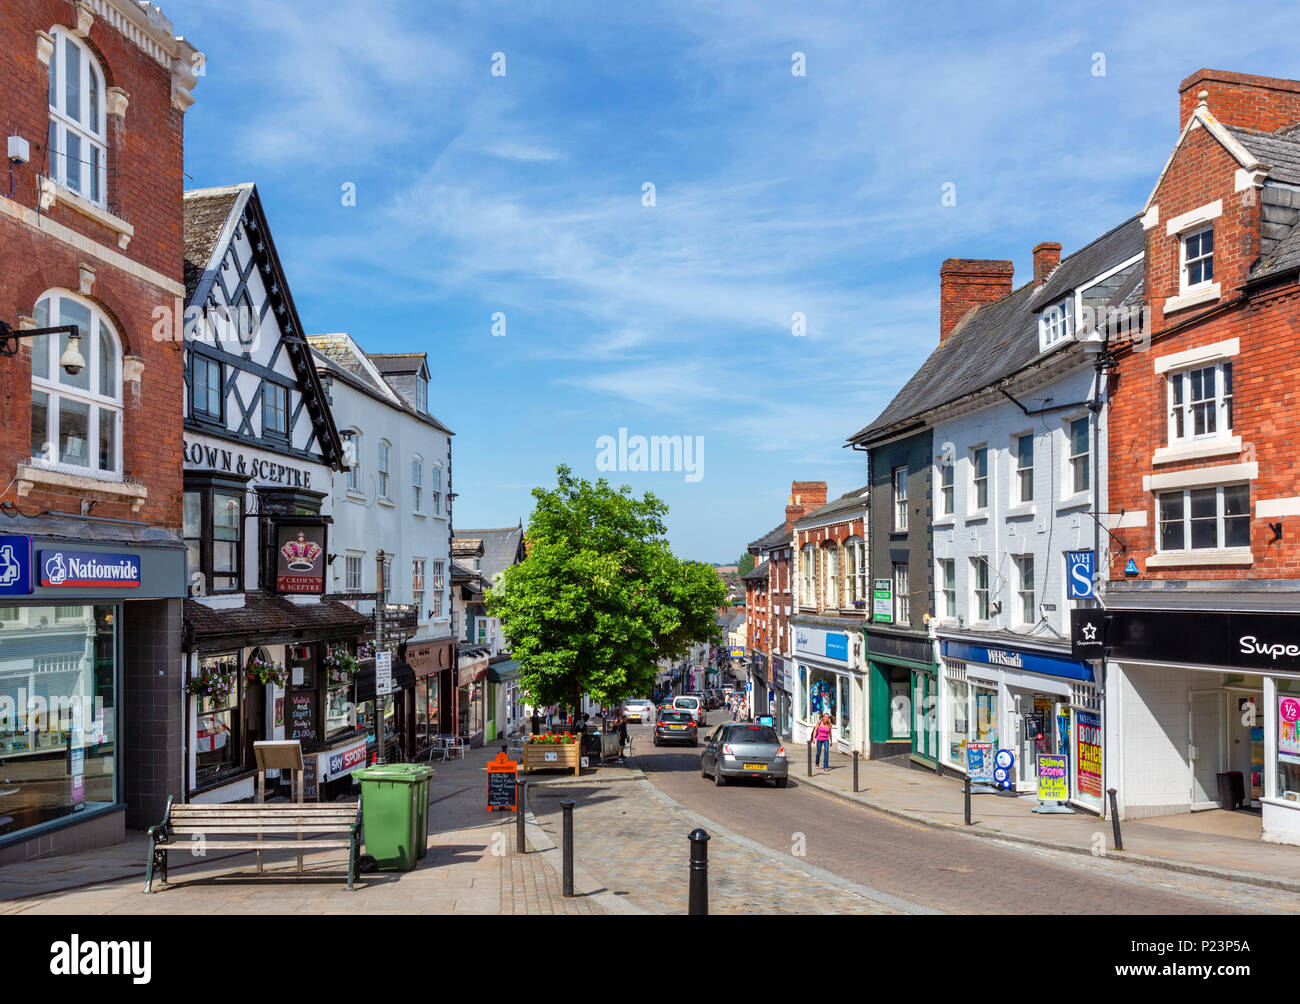 Shops on Broad Street in the town centre, Ross-on-Wye, Herefordshire, England, UK - Stock Image